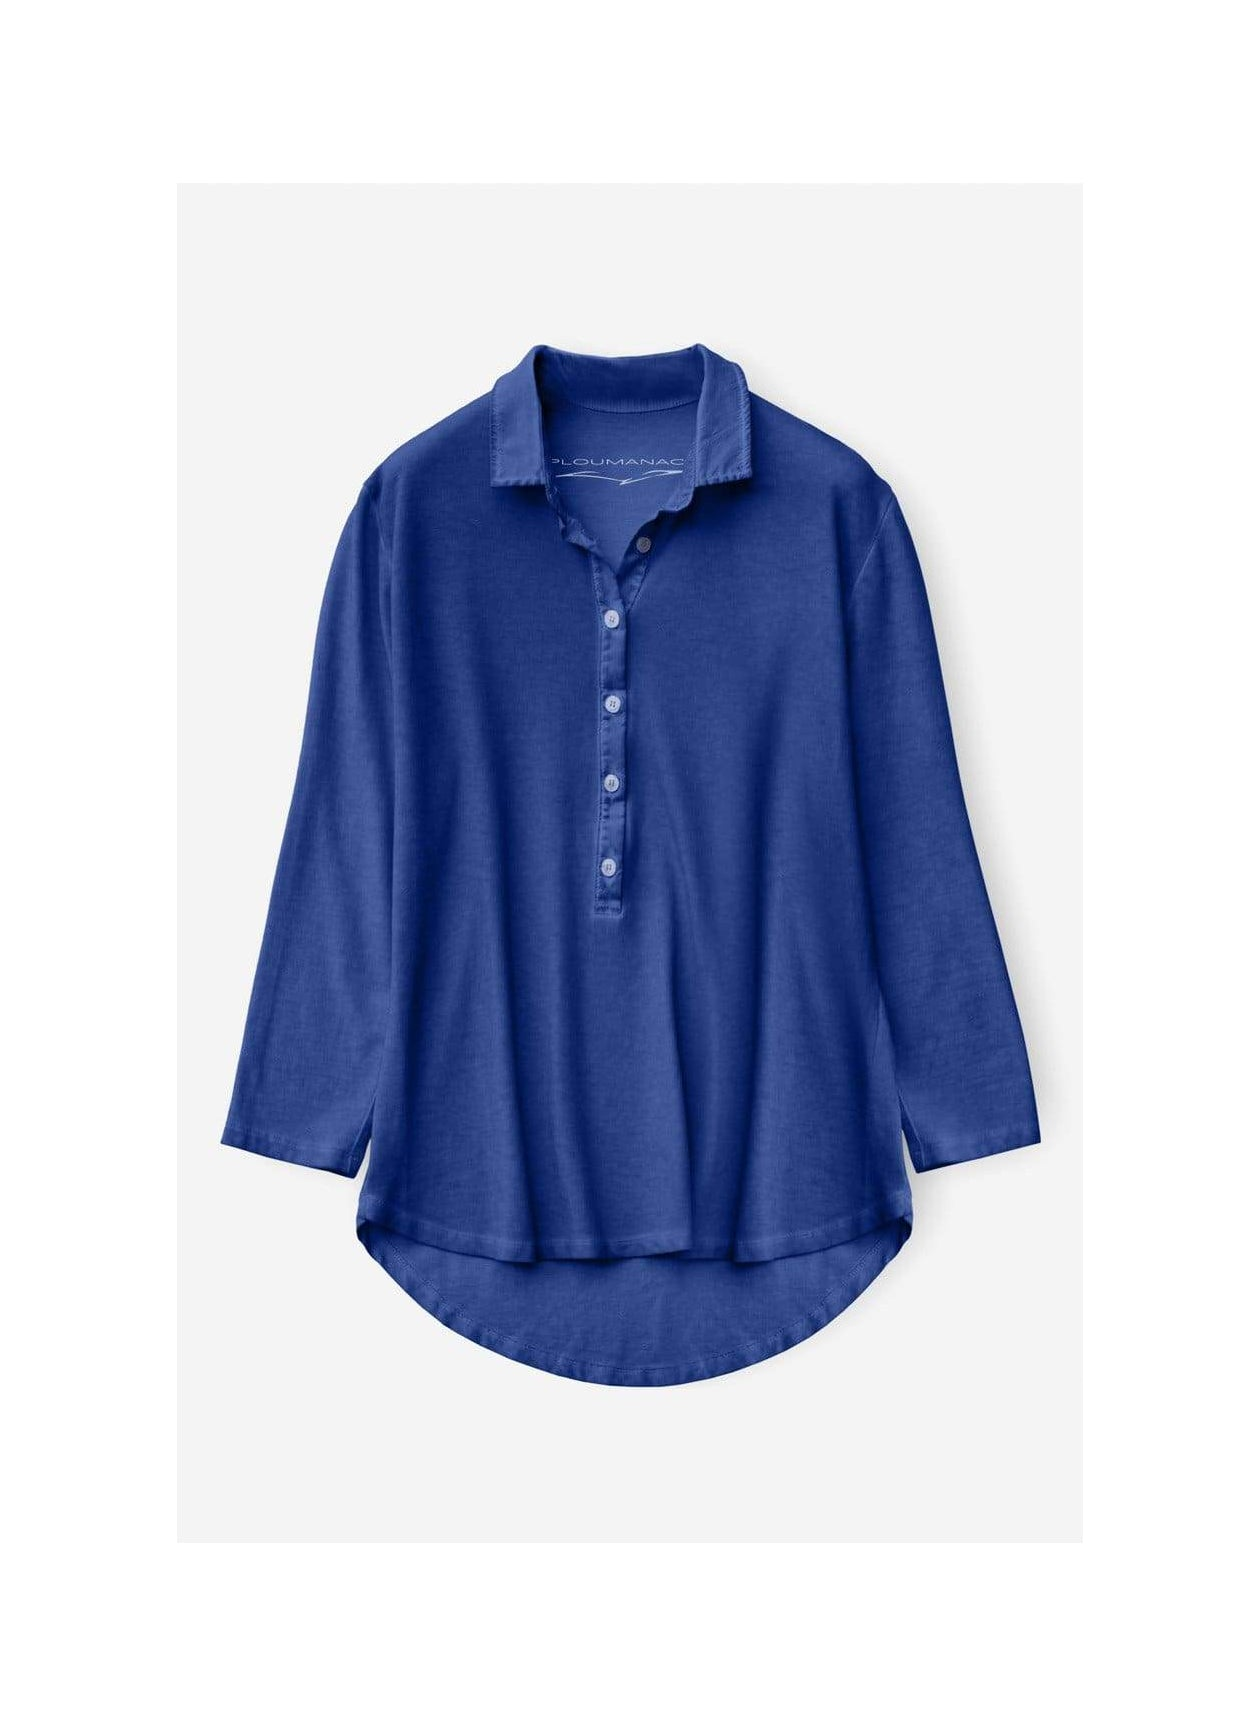 ROYAL STONDATA POLO TOP